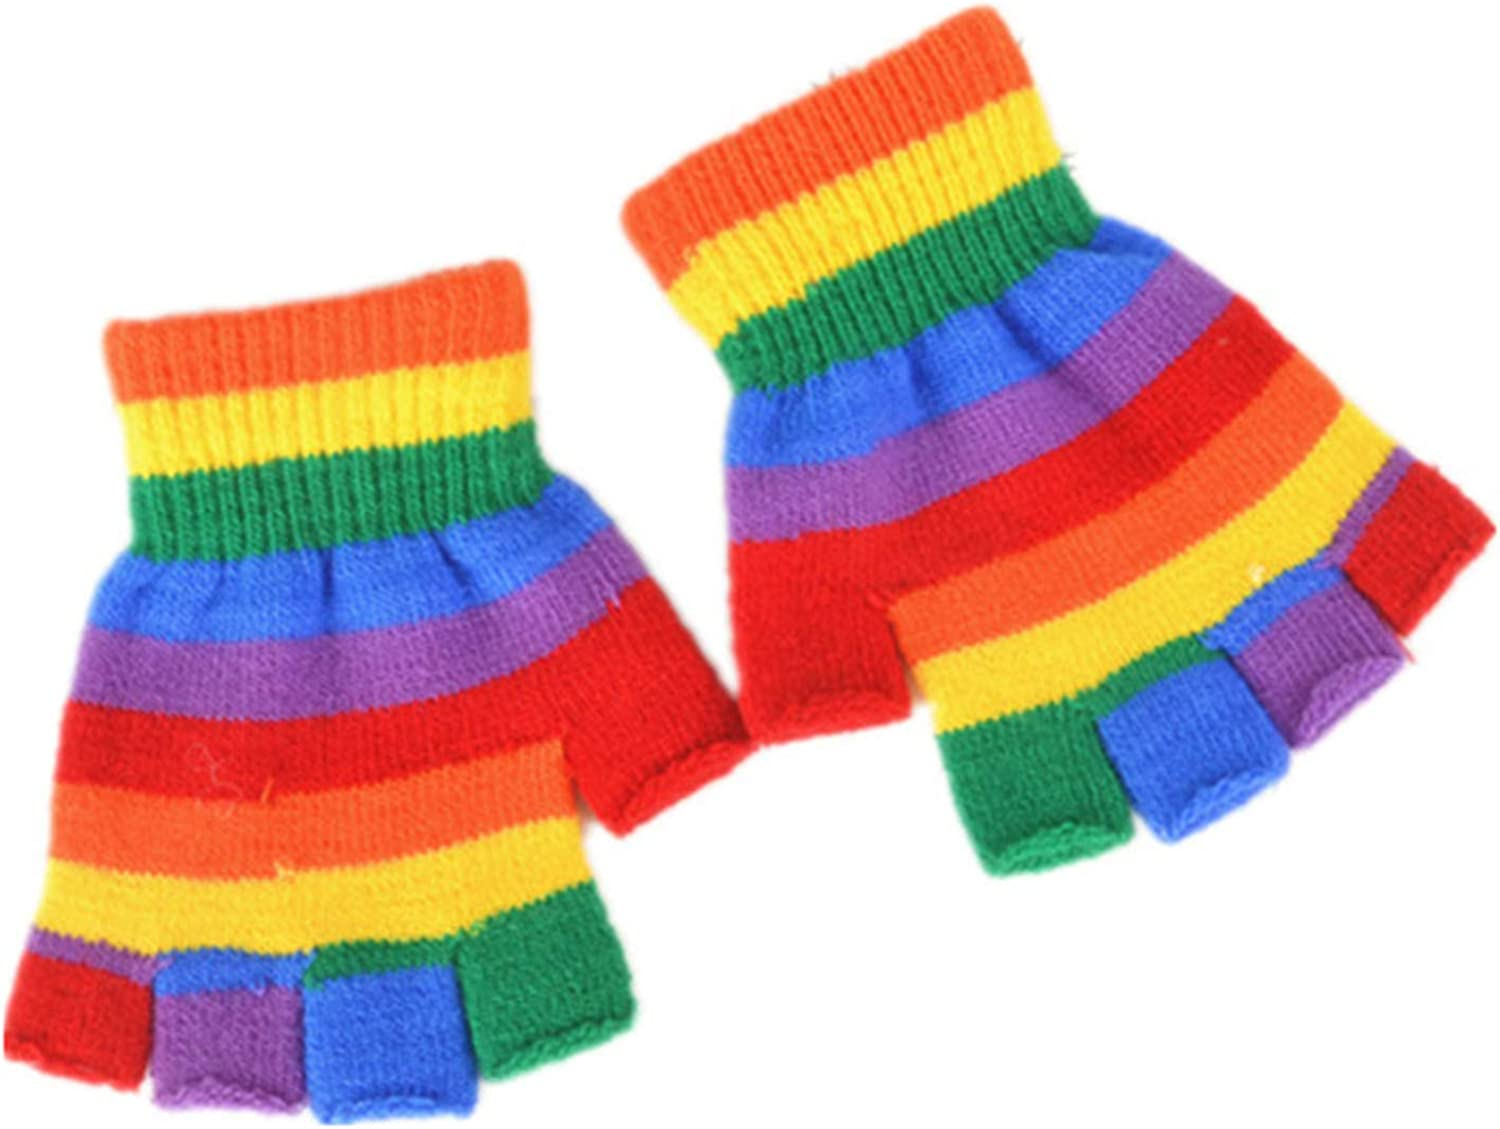 Kids Winter Gloves Rainbow Colorful Full Half Finger Glove Striped Stretchy Warm Knit Mittens